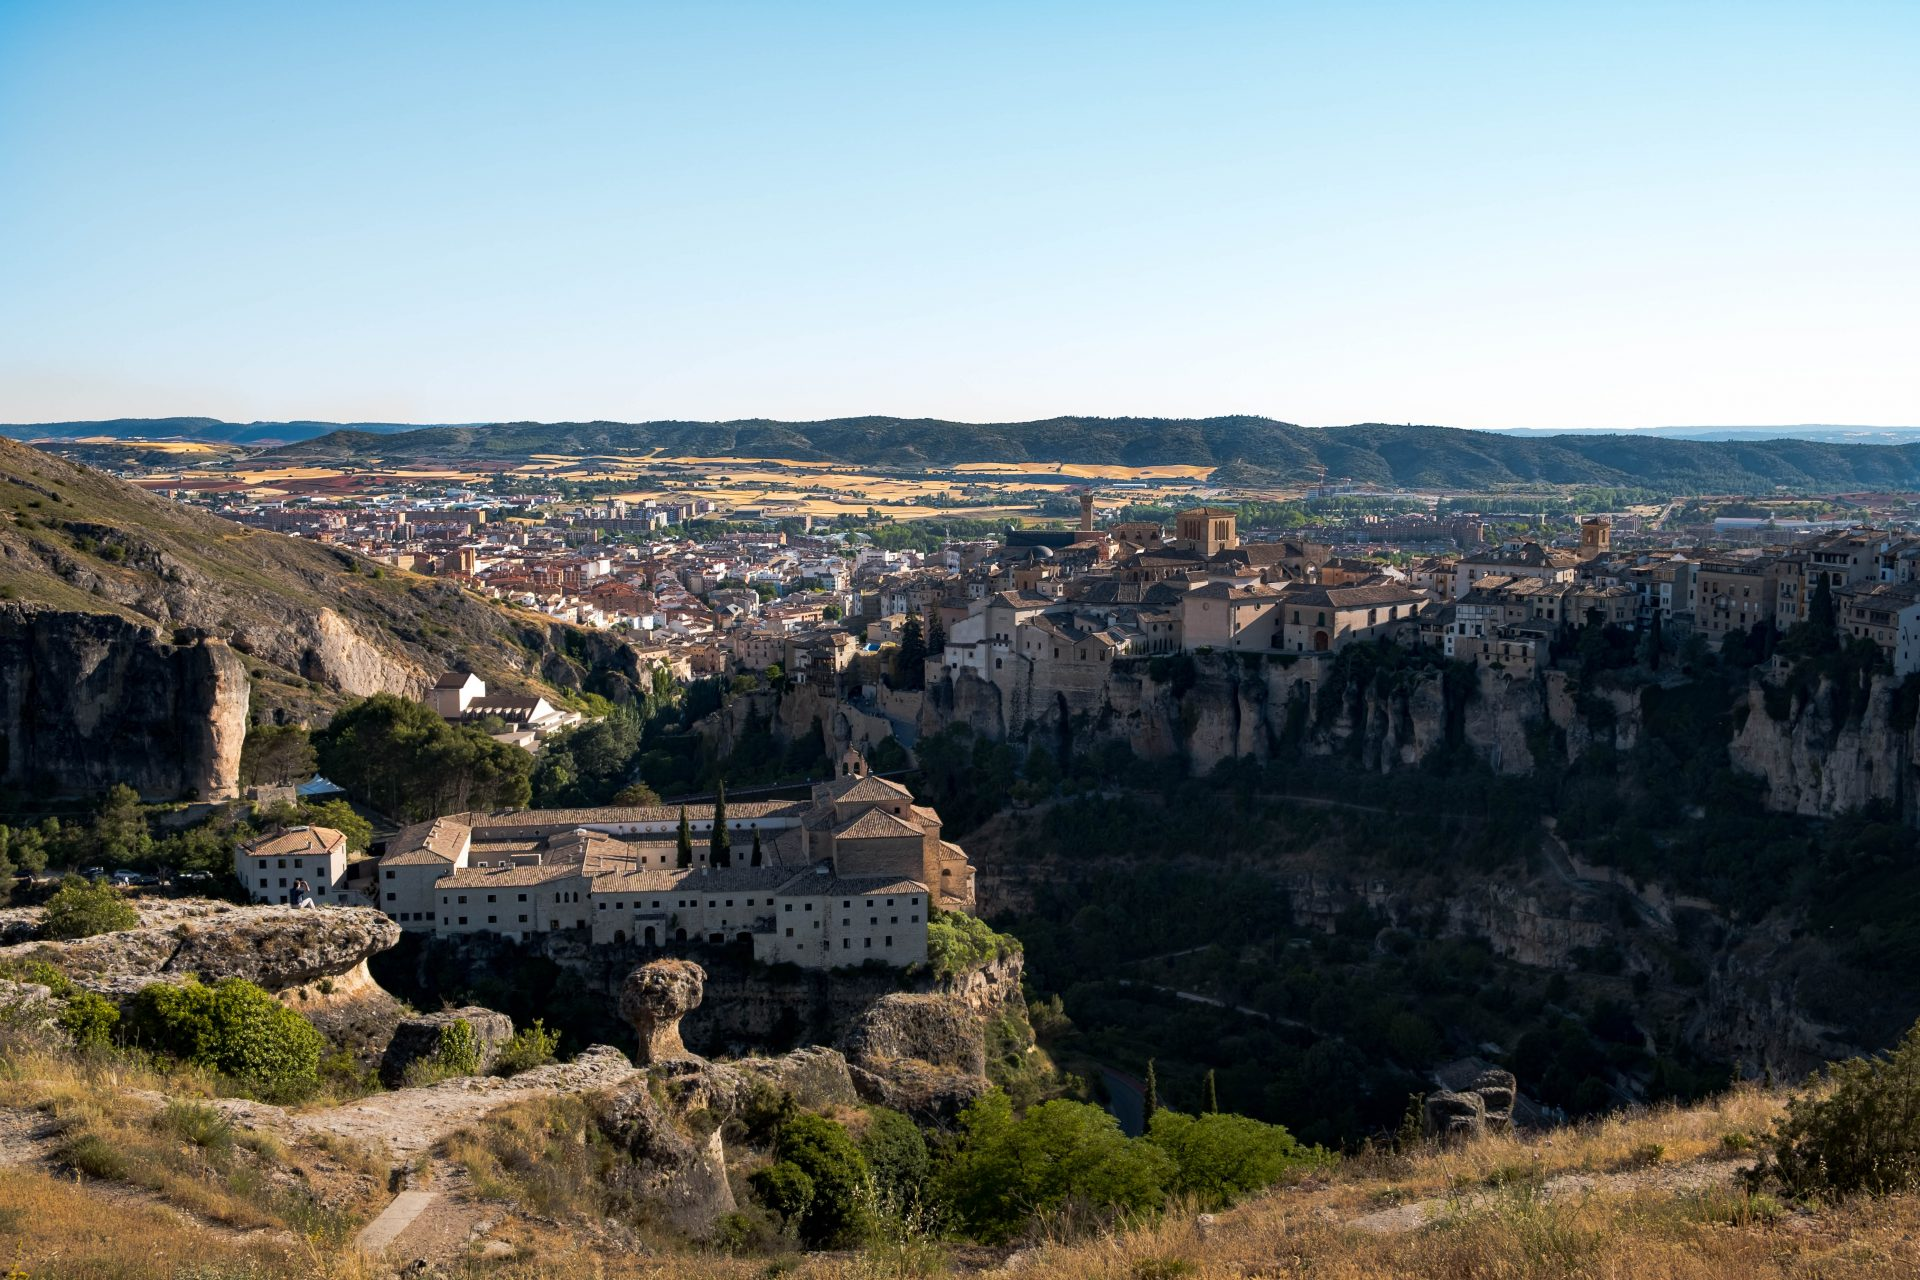 Panoramic view of the village of Cuenca photo by Jo Kassis